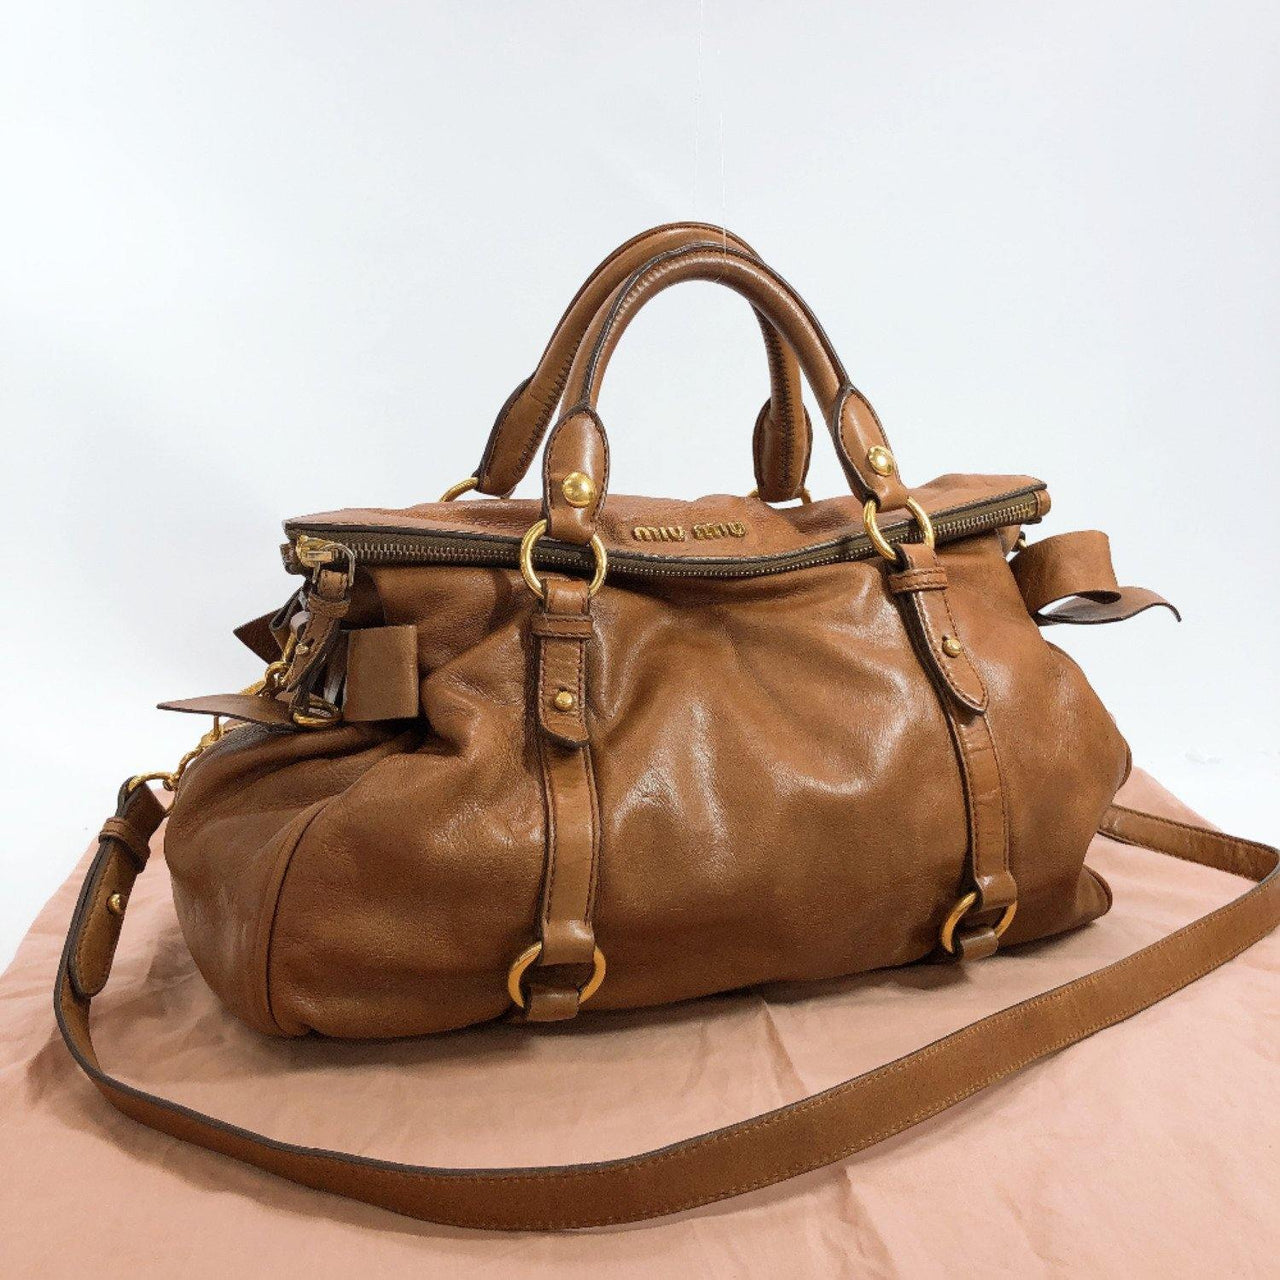 Miu Miu Handbag 2WAY leather/Gold Hardware Brown Women Used - JP-BRANDS.com